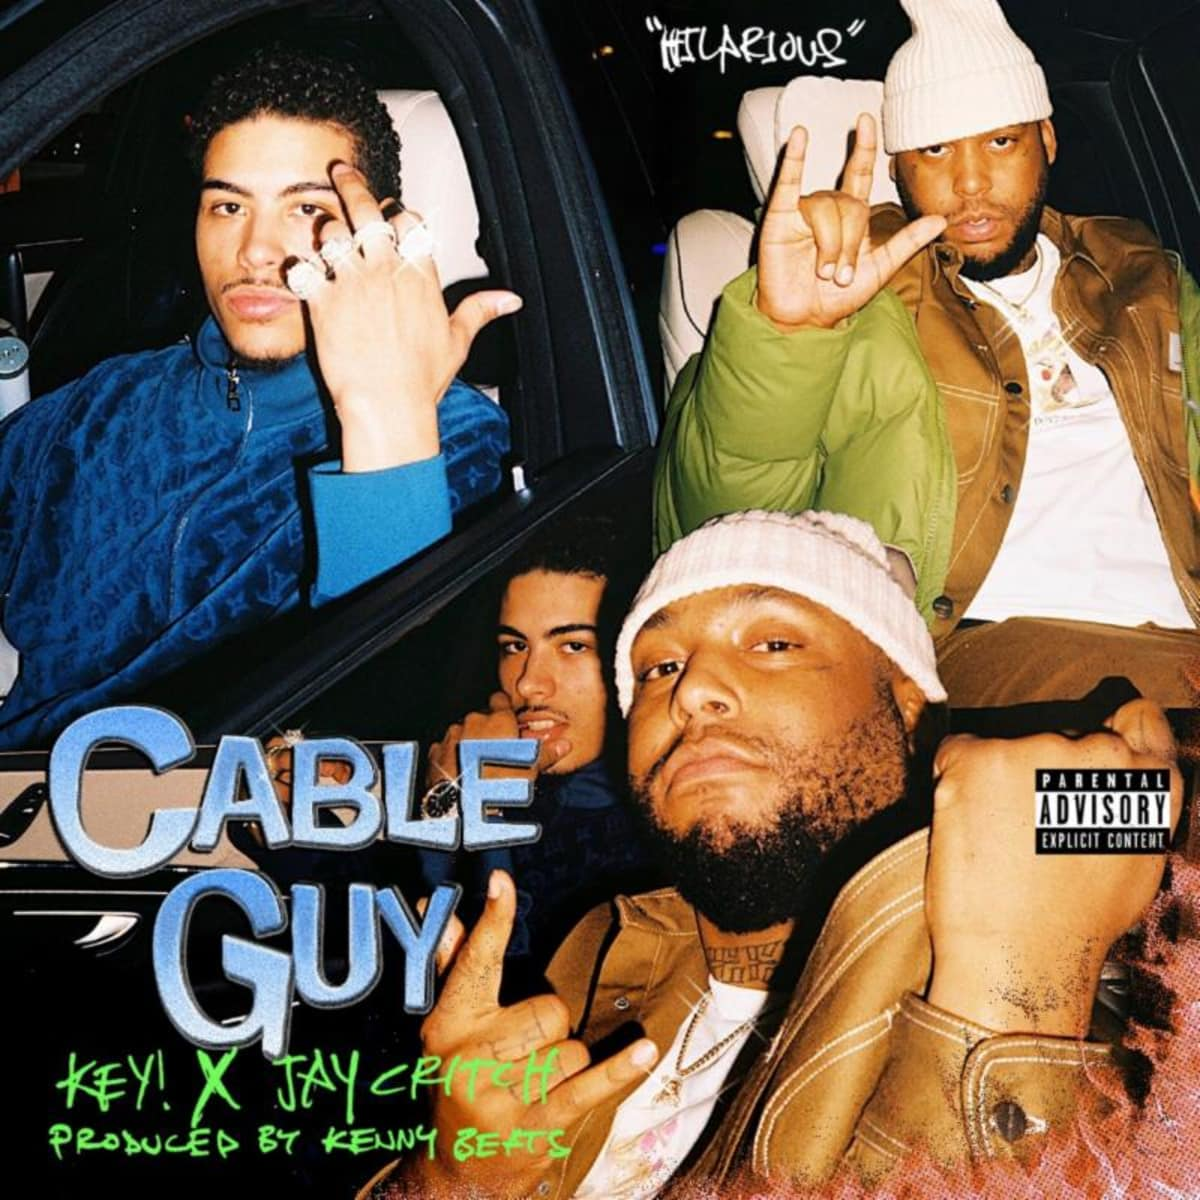 Key! trades bars with Jay Critch on Kenny Beats-produced 'Cable Guy.' trib.al/JlCr7ab